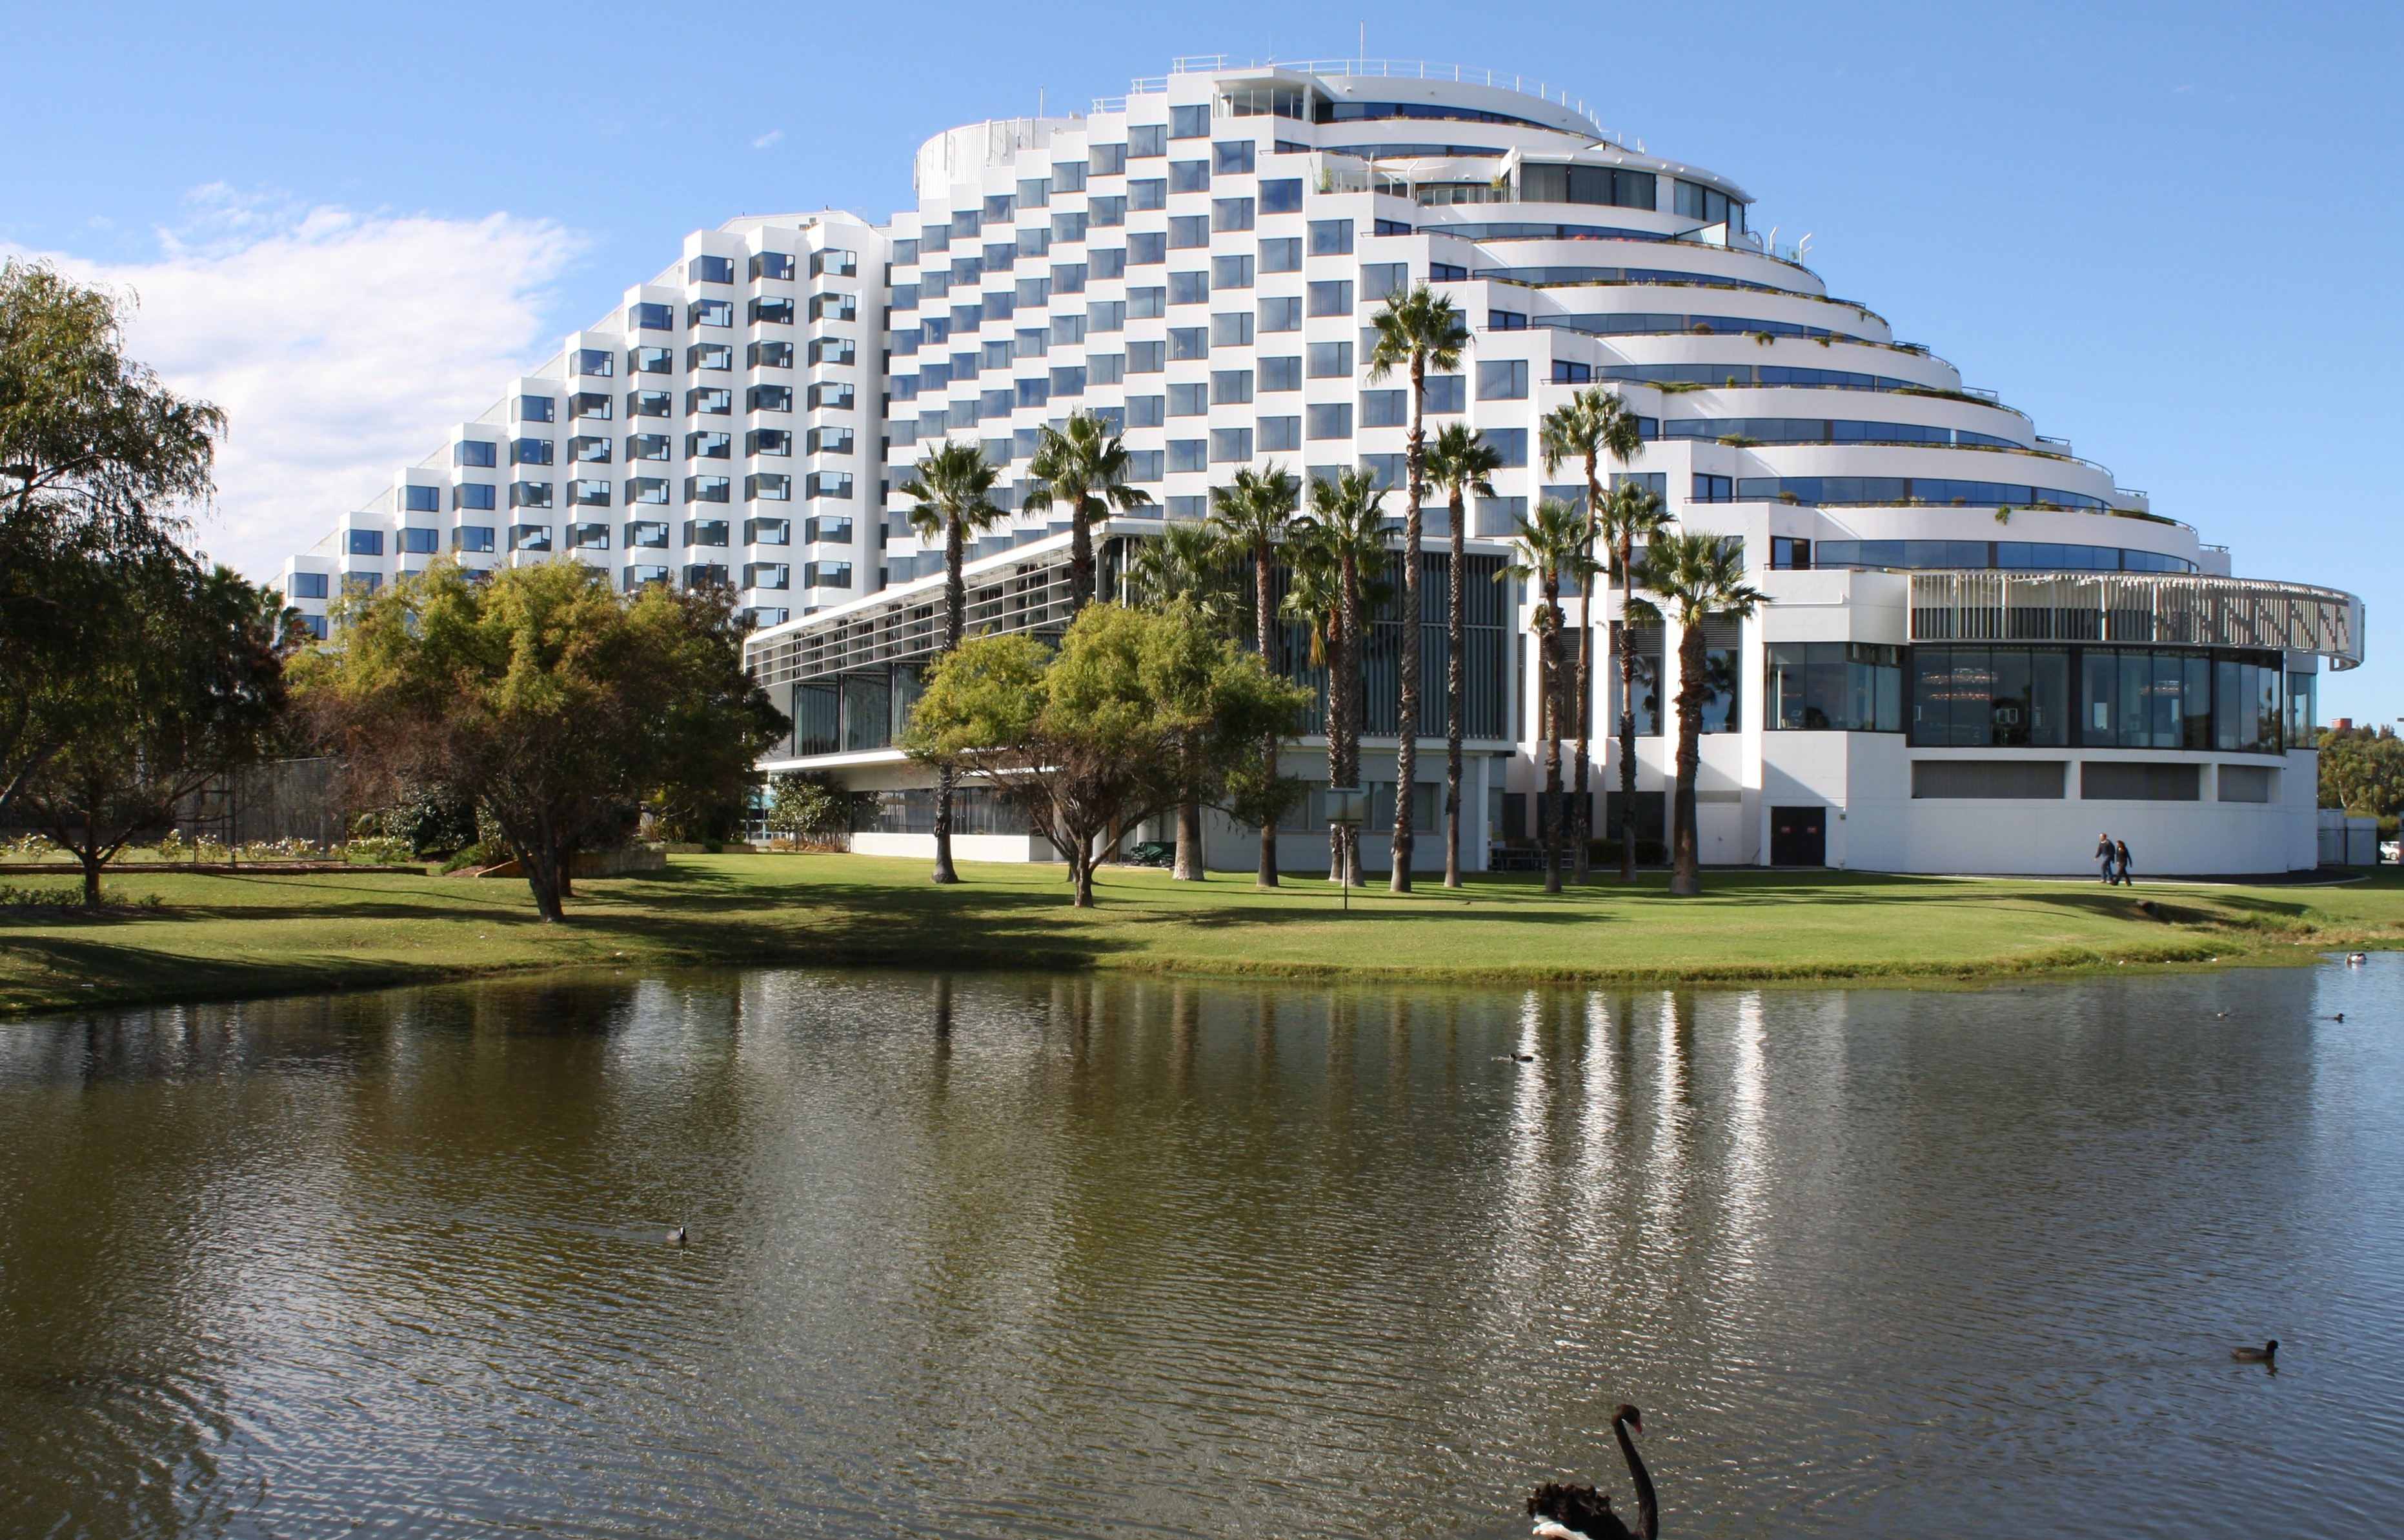 Burswood casino accommodation specials